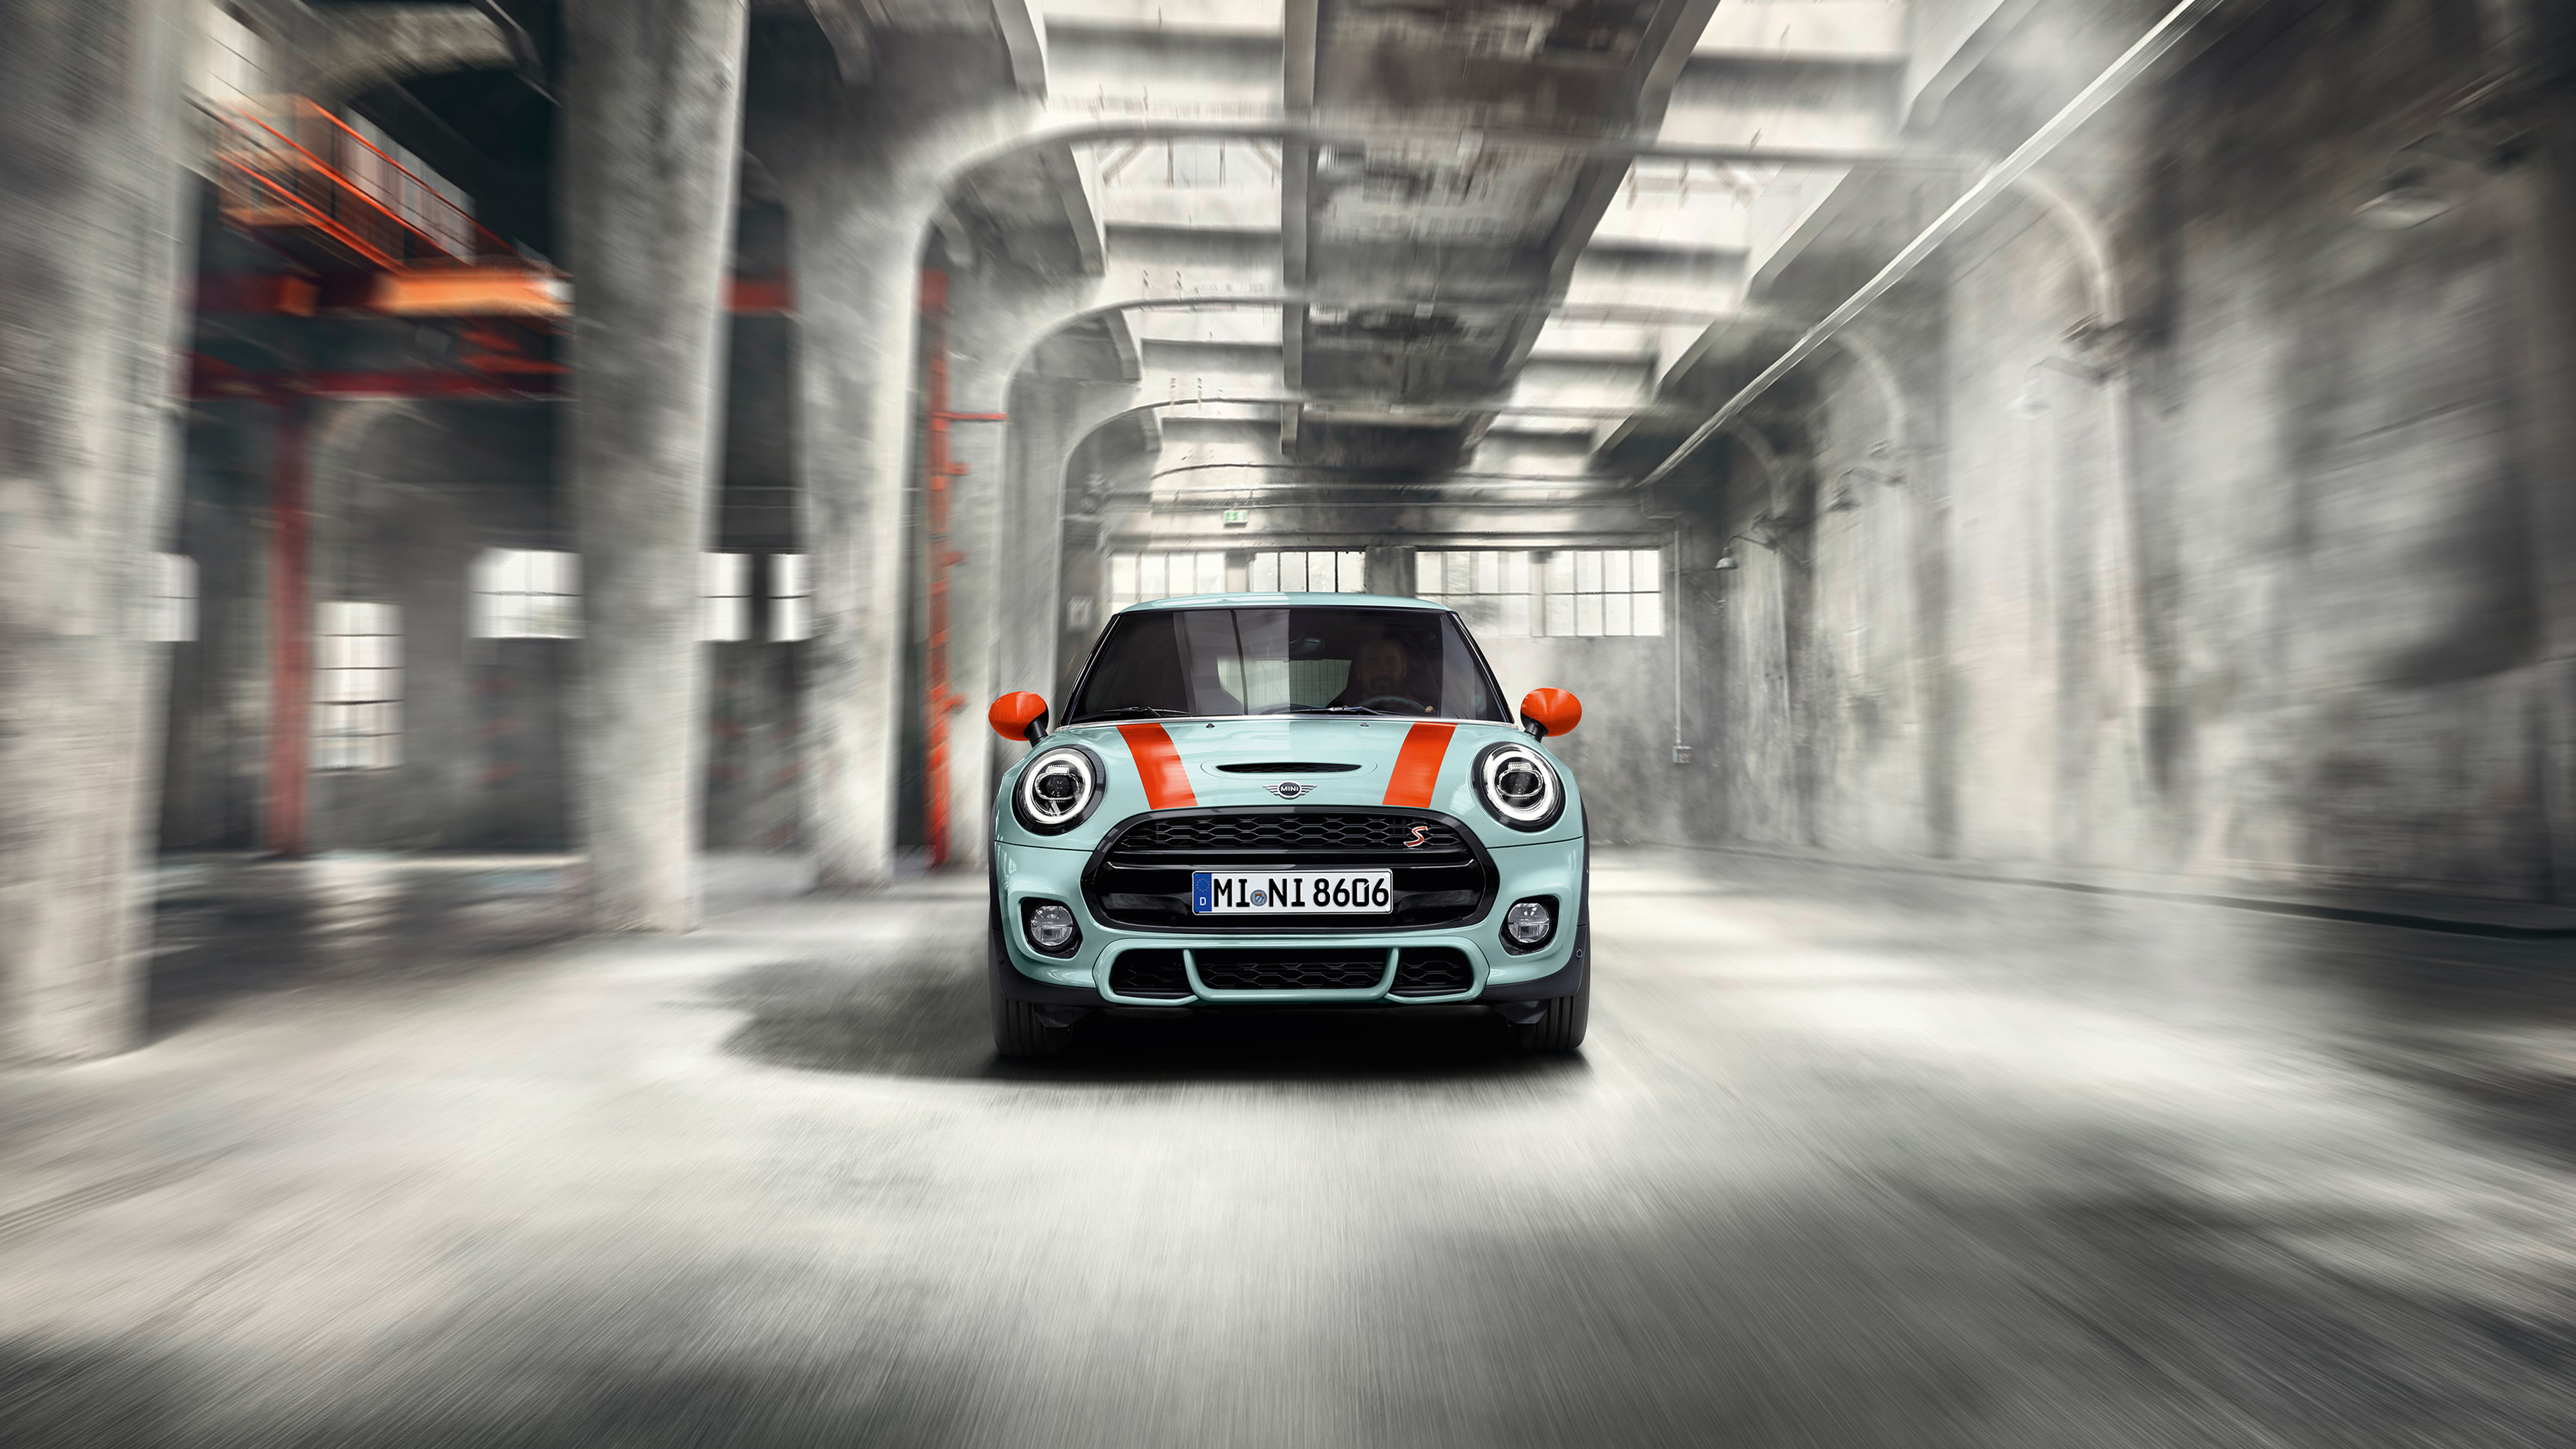 Mini Cooper S Delaney Edition 2018 4k Wallpapers Hd Wallpapers